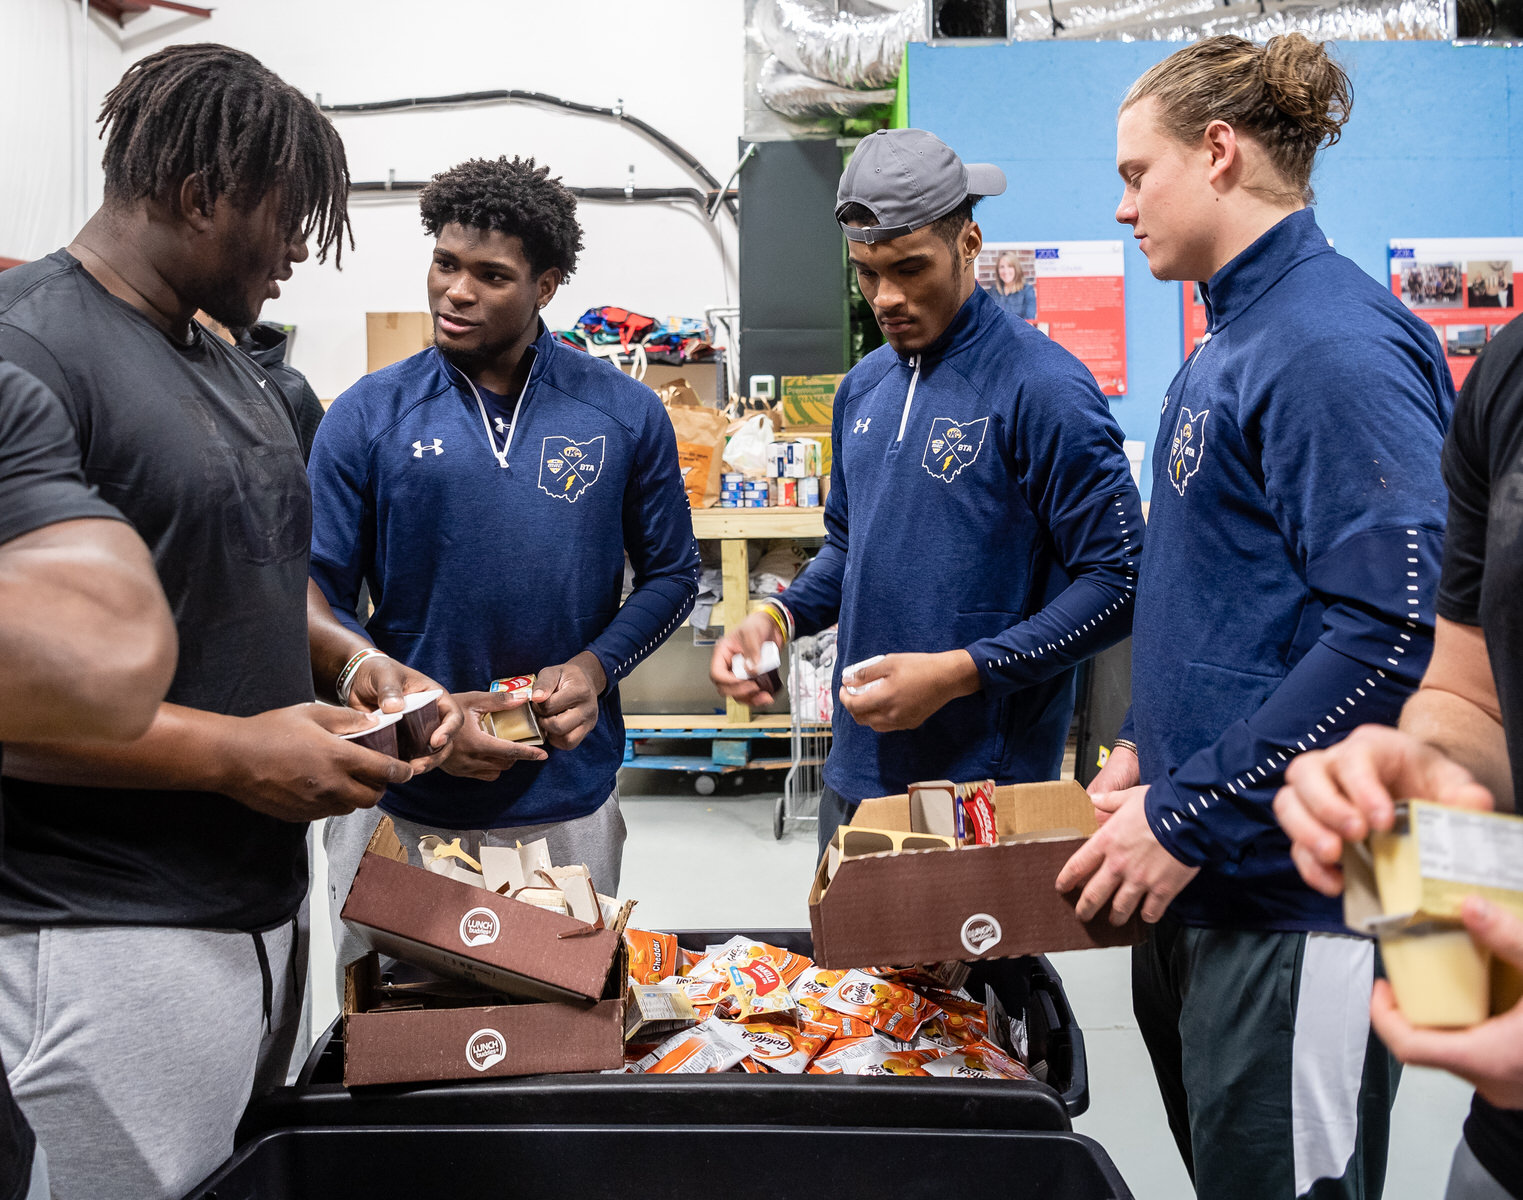 Kent State football players prepare meals for needy children ahead of the Tropical Smoothie Cafe Frisco Bowl.